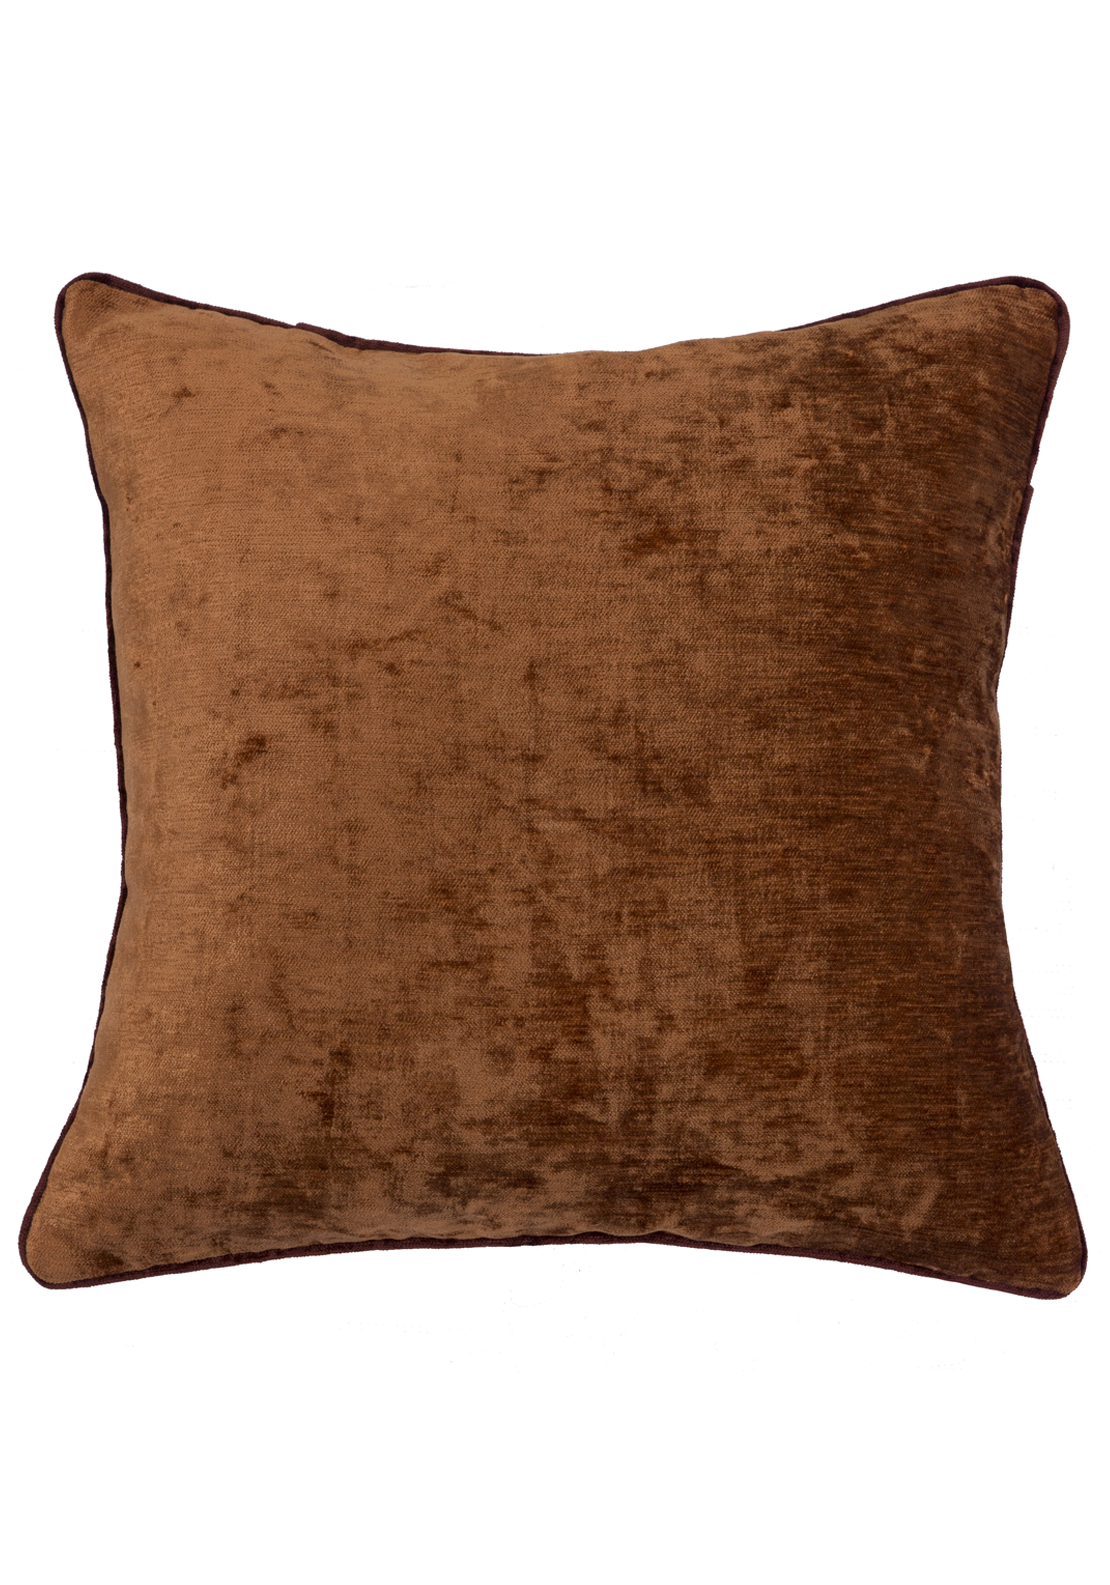 Scatterbox Gemstone Filled Cushion, 43 x 43cm Orange